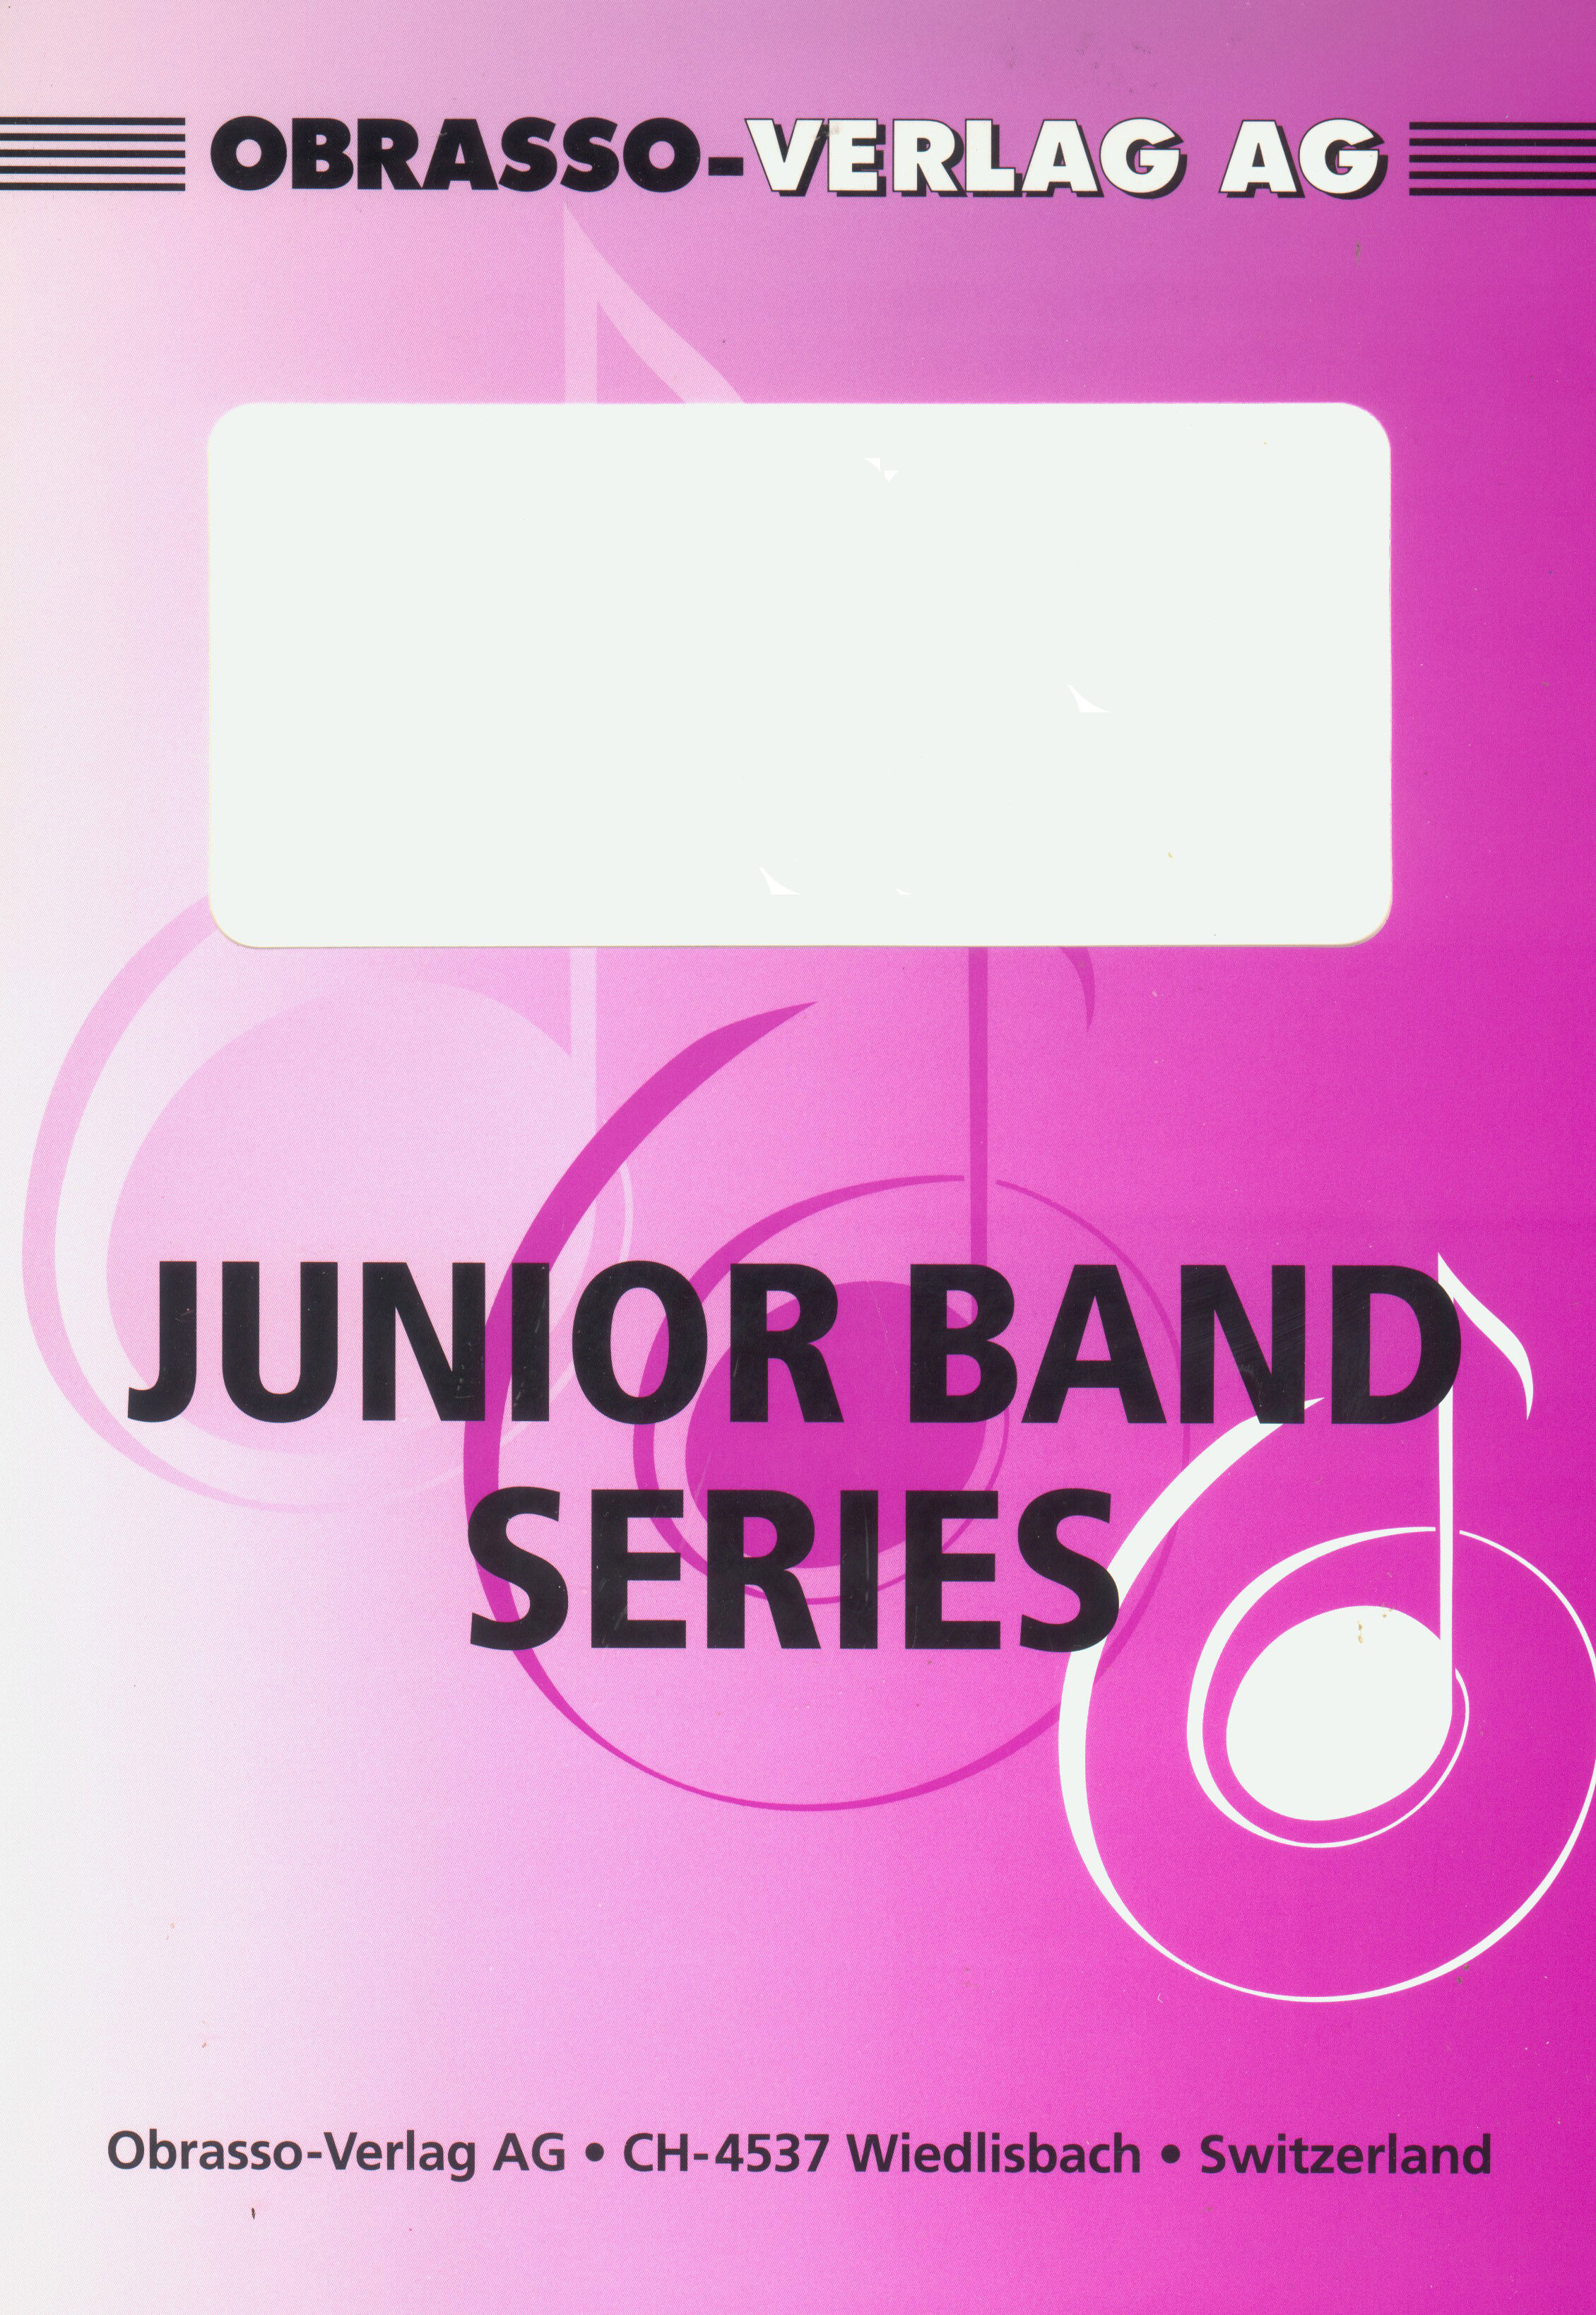 ABBA GOLD (Junior Band no.59)